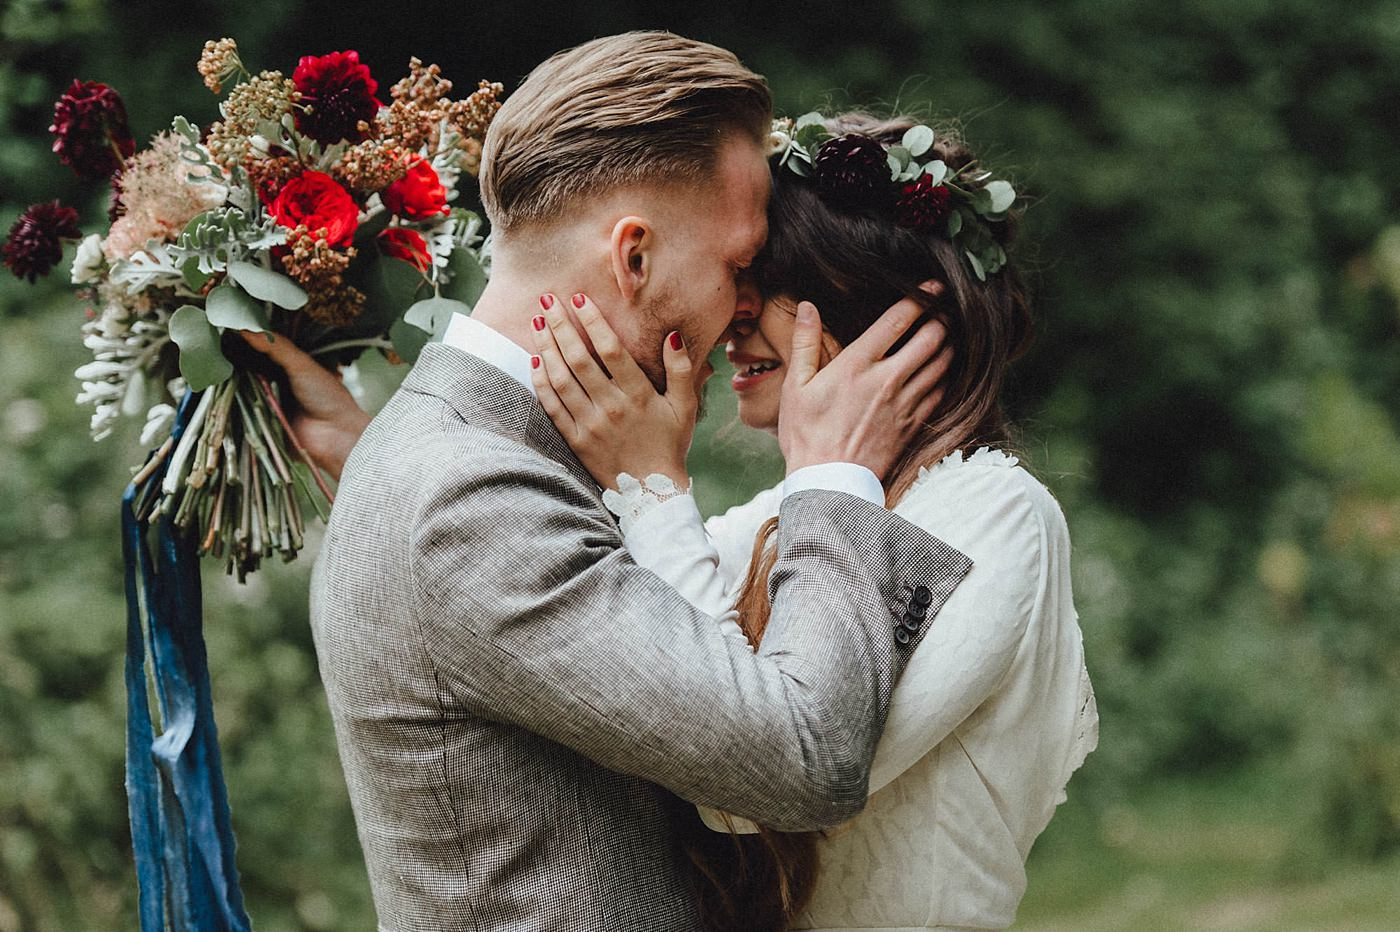 urban-elopement-wedding-102 Merve & Nils emotionales Elopement - Wedding Wesel & Schottlandurban elopement wedding 102 1